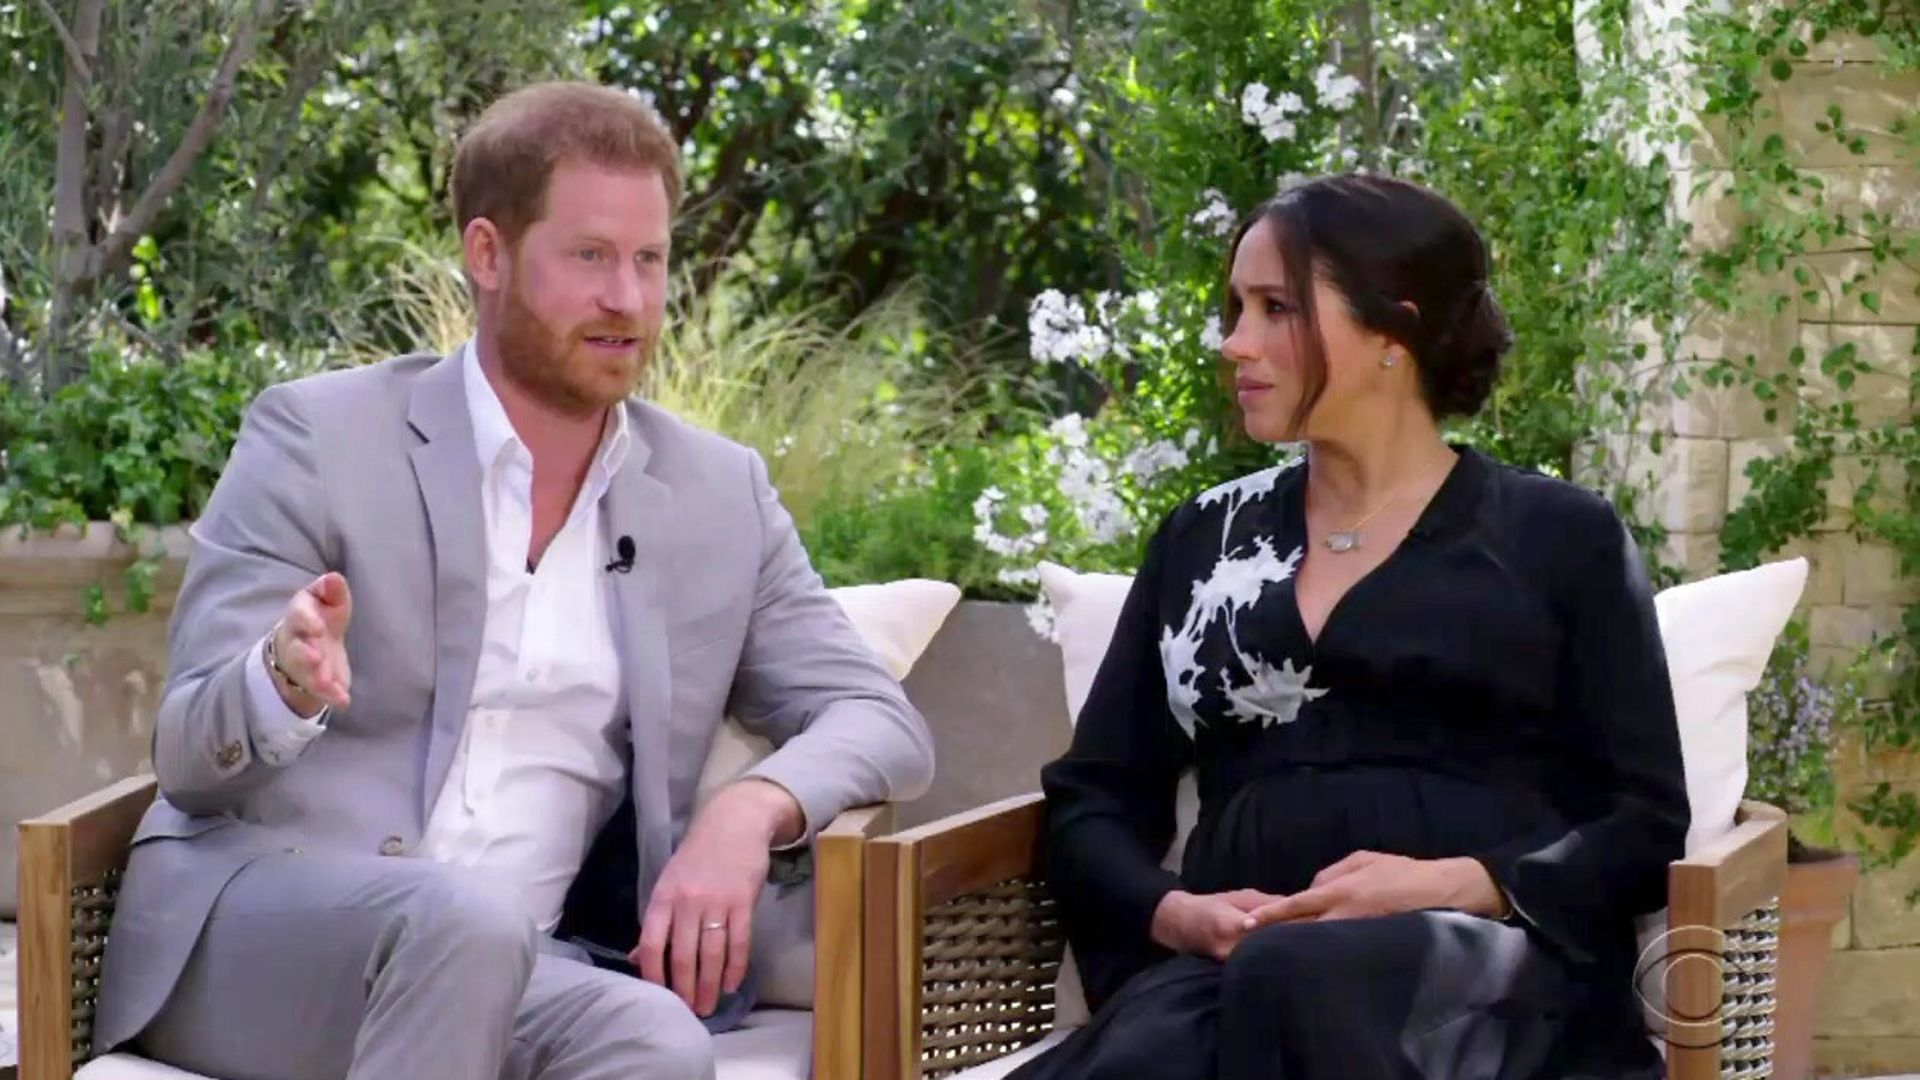 Harry and Meghan are interviewed by Oprah - Credit: CBS